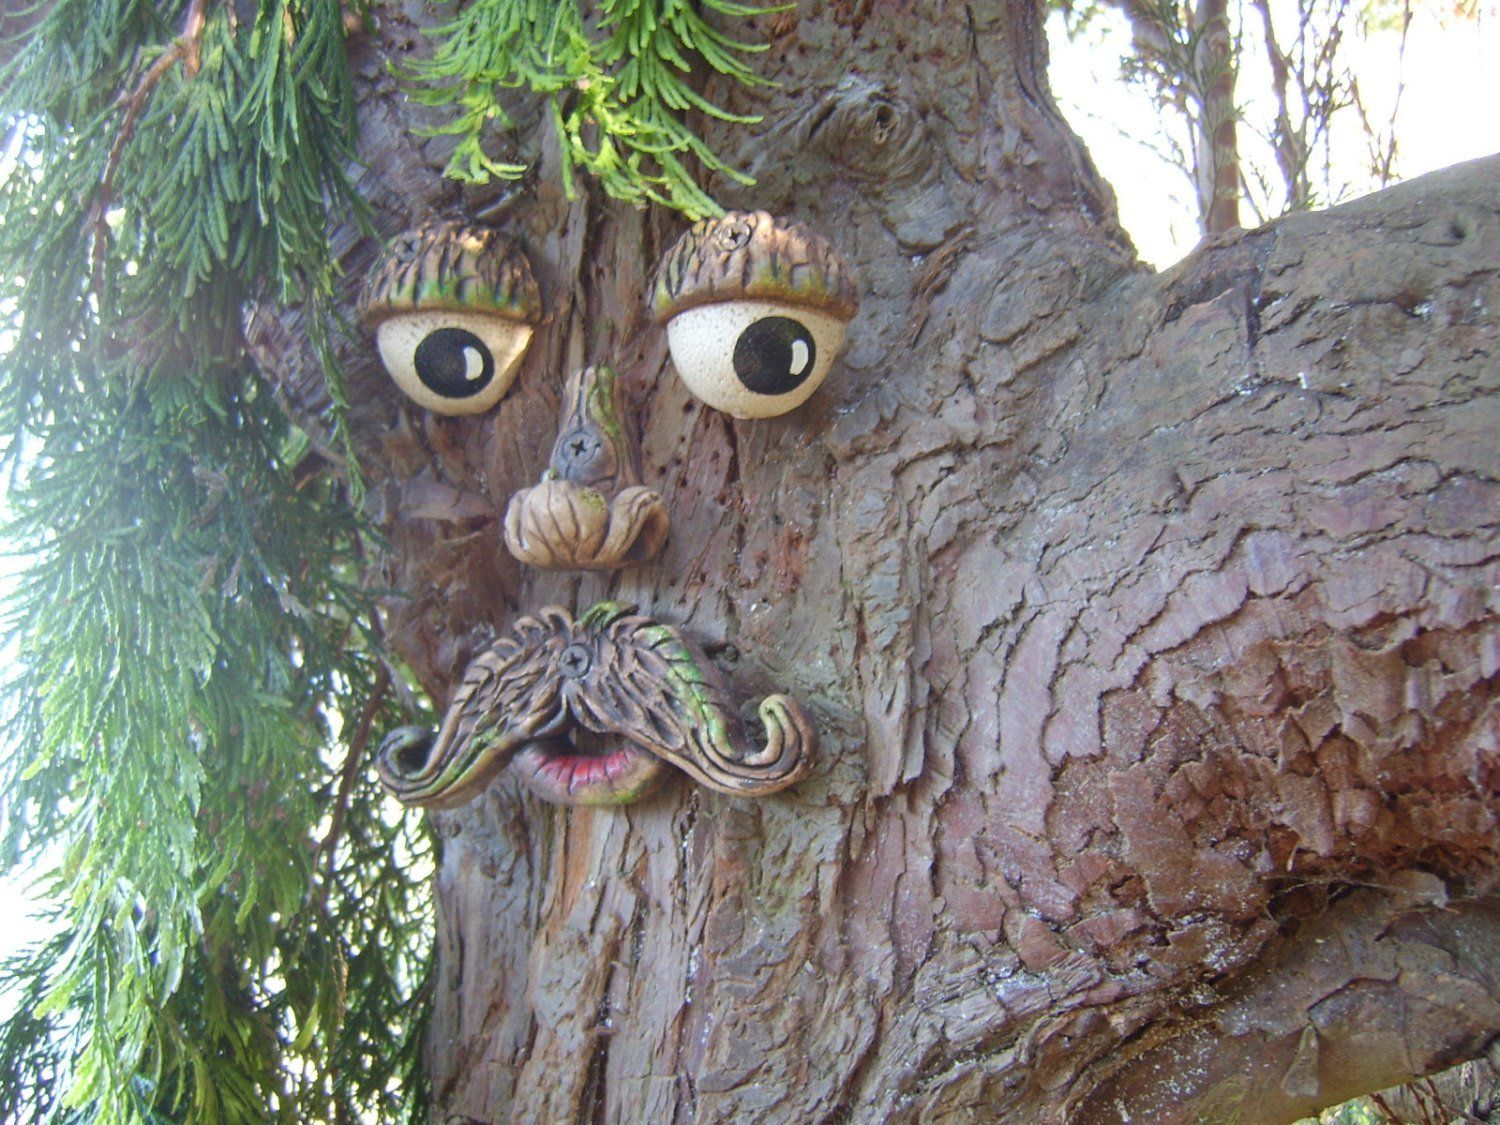 Photo of Tree Face garden decorations, great gifts for all, outdoor sculptures, statues ornaments. garden decorations yard art, funny faces on trees.